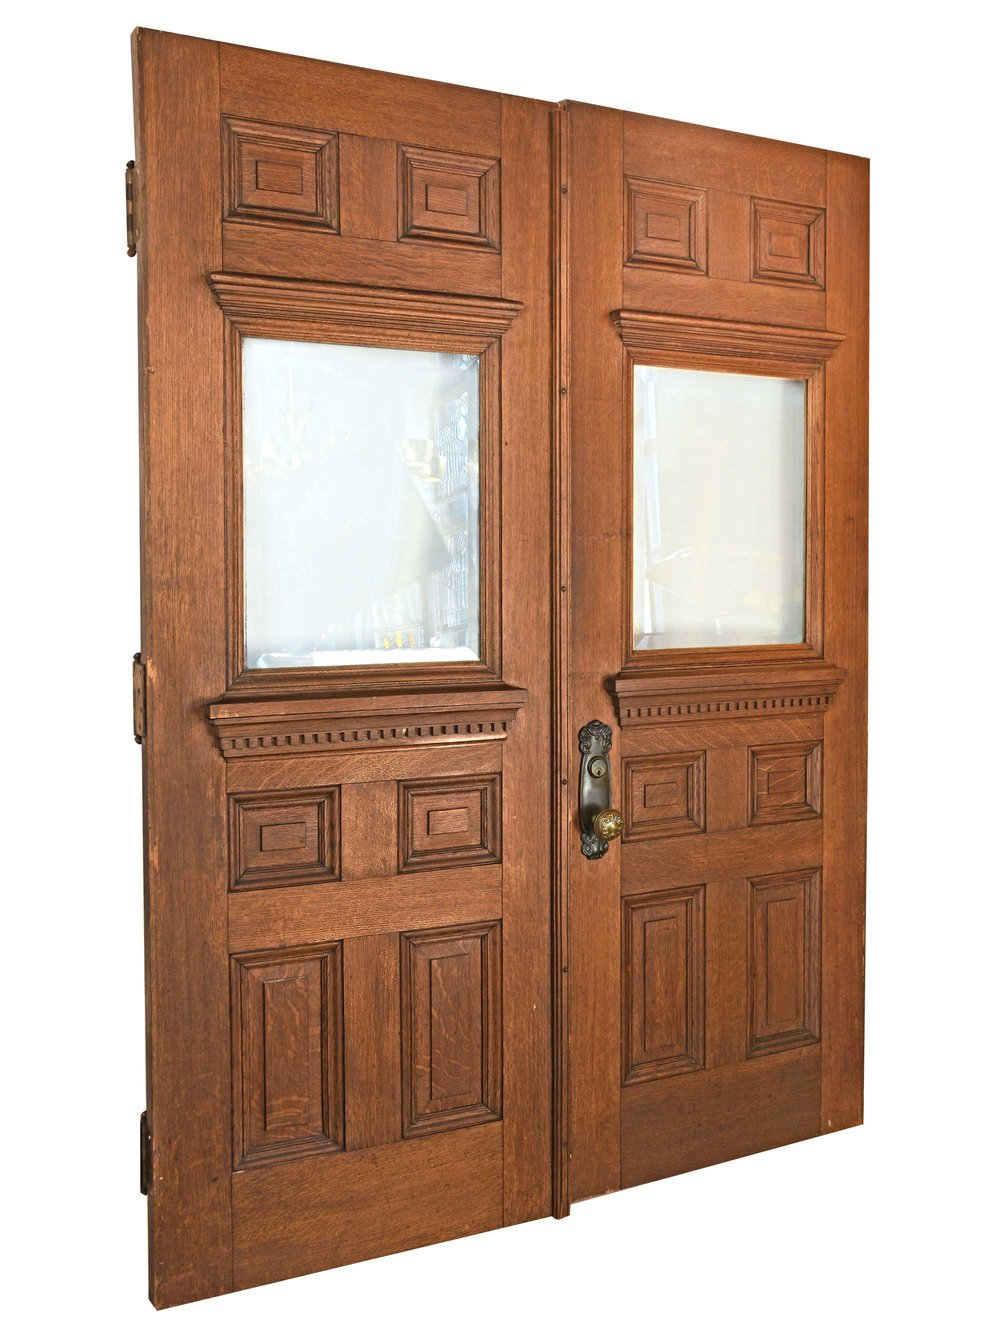 46694-oak-double-doors-with-beveled-glass-angle.jpg